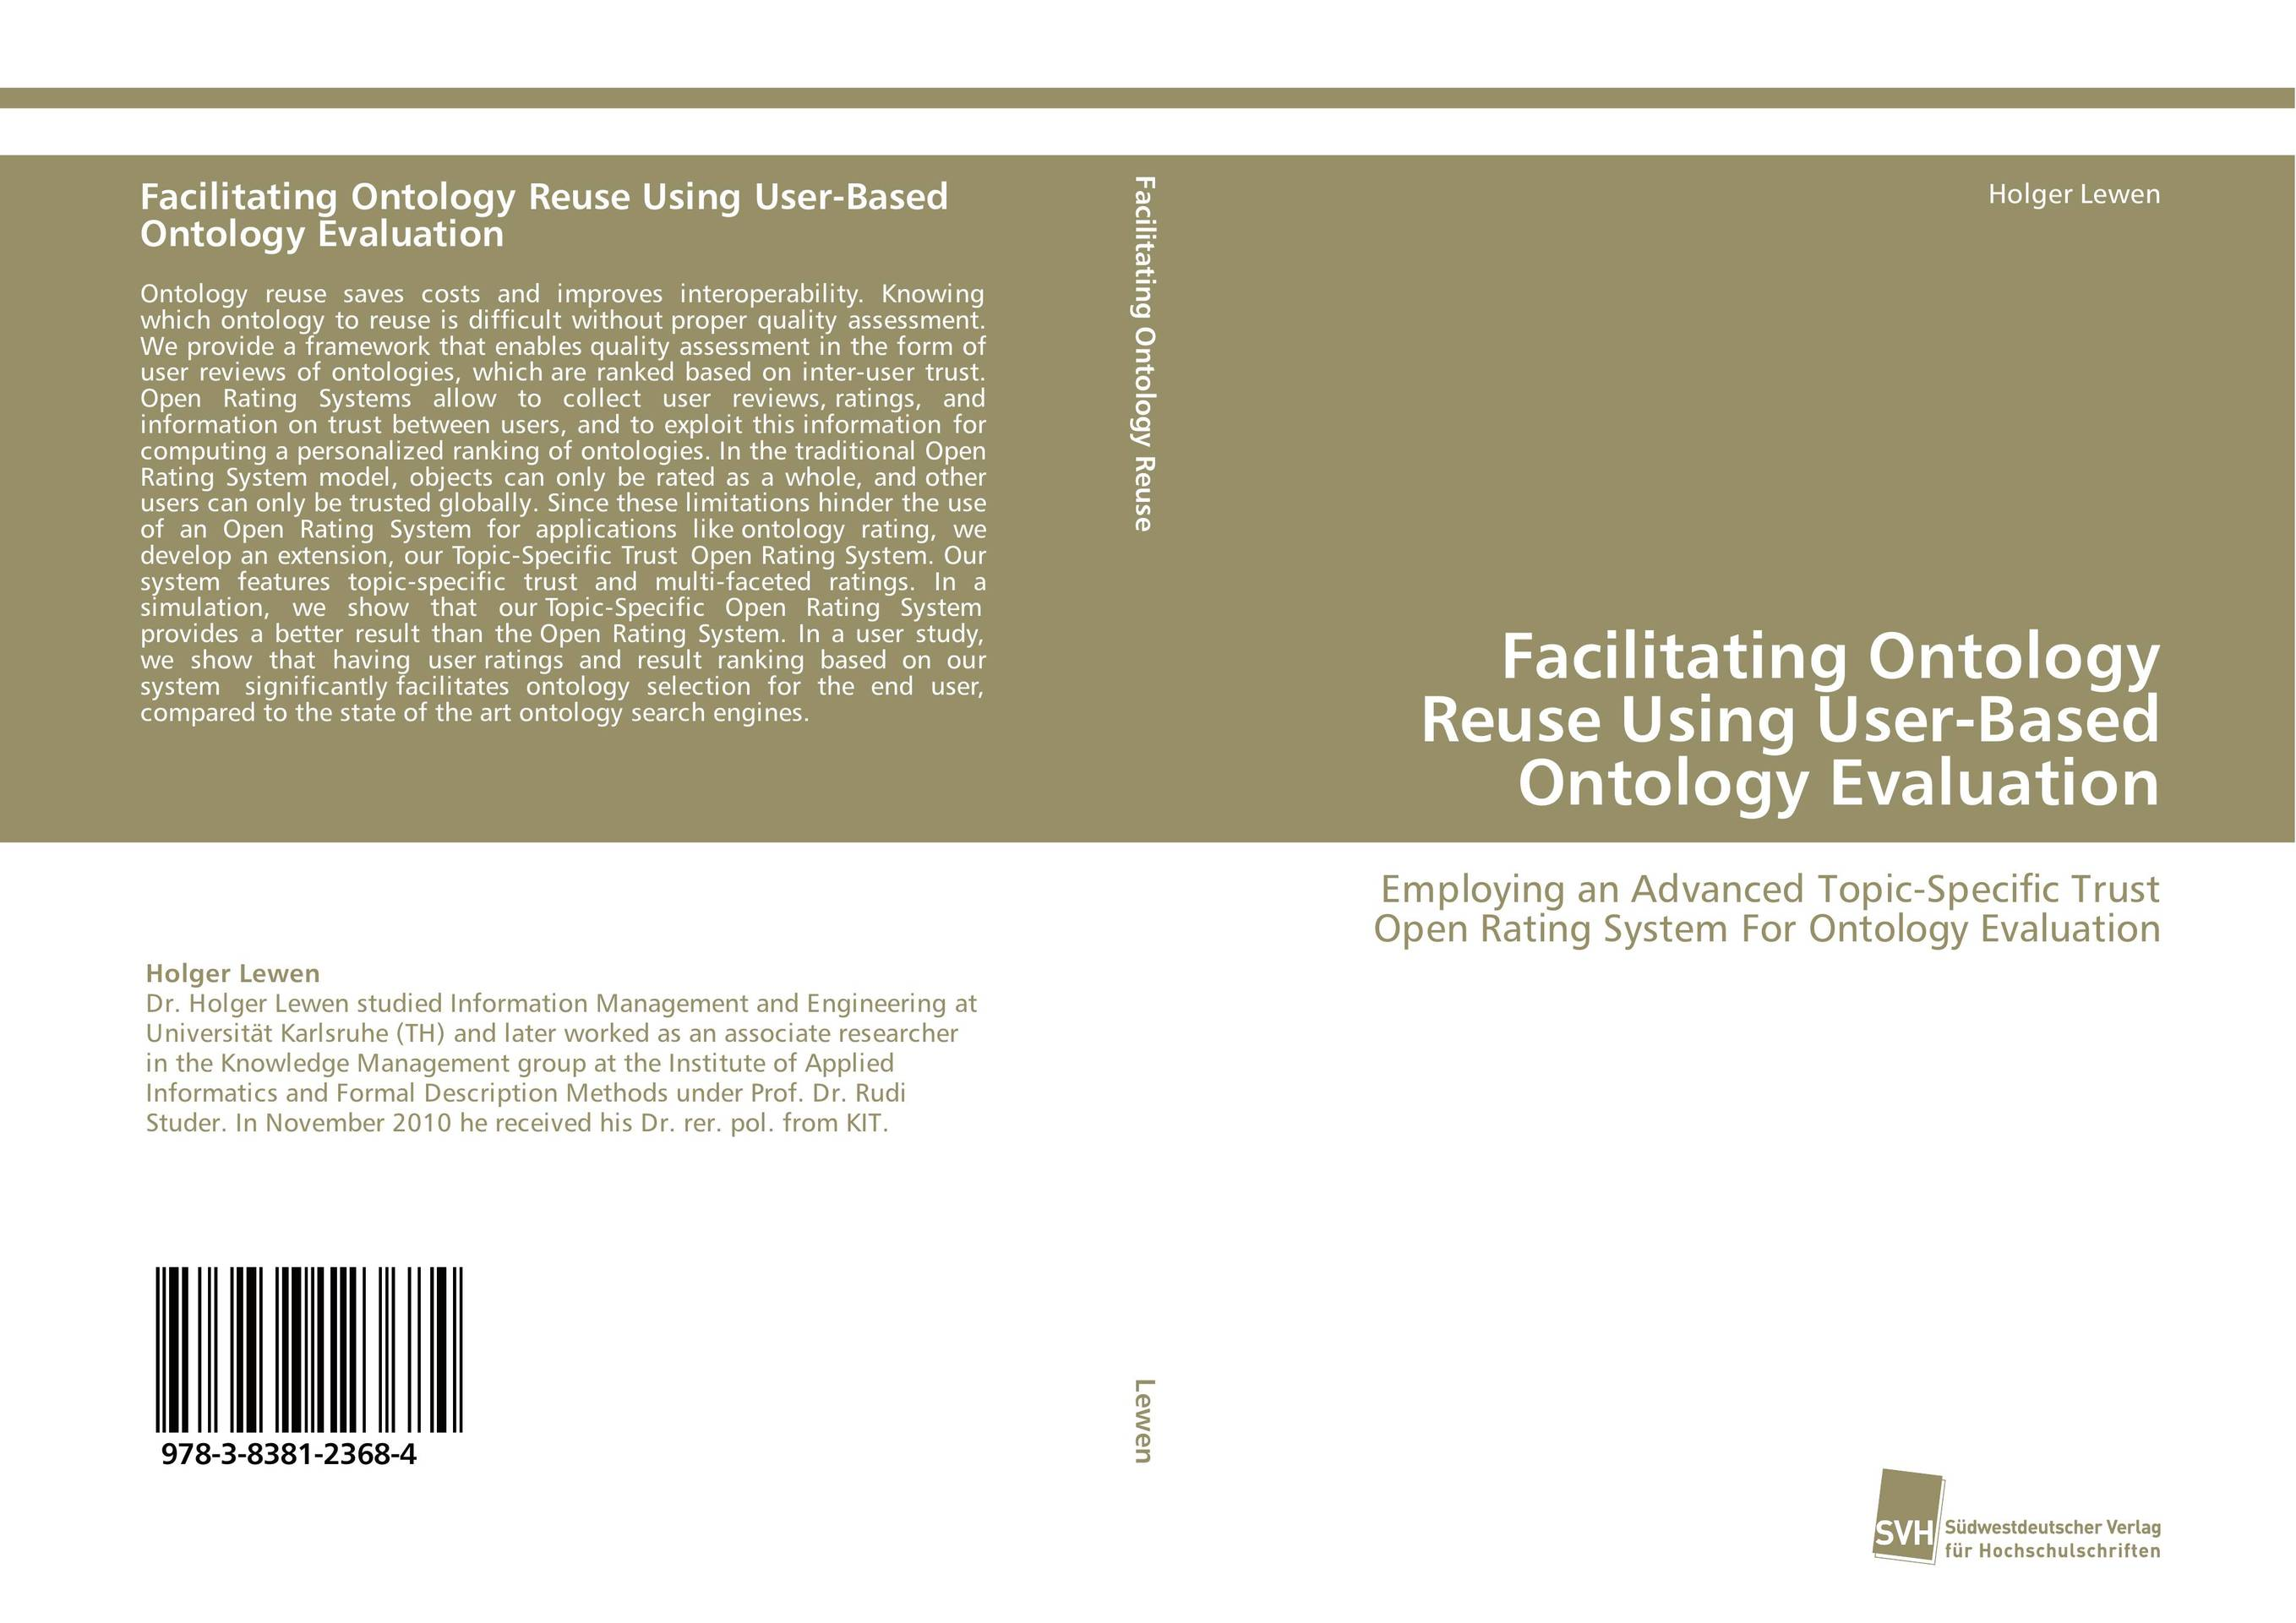 Facilitating Ontology Reuse Using User-Based Ontology Evaluation